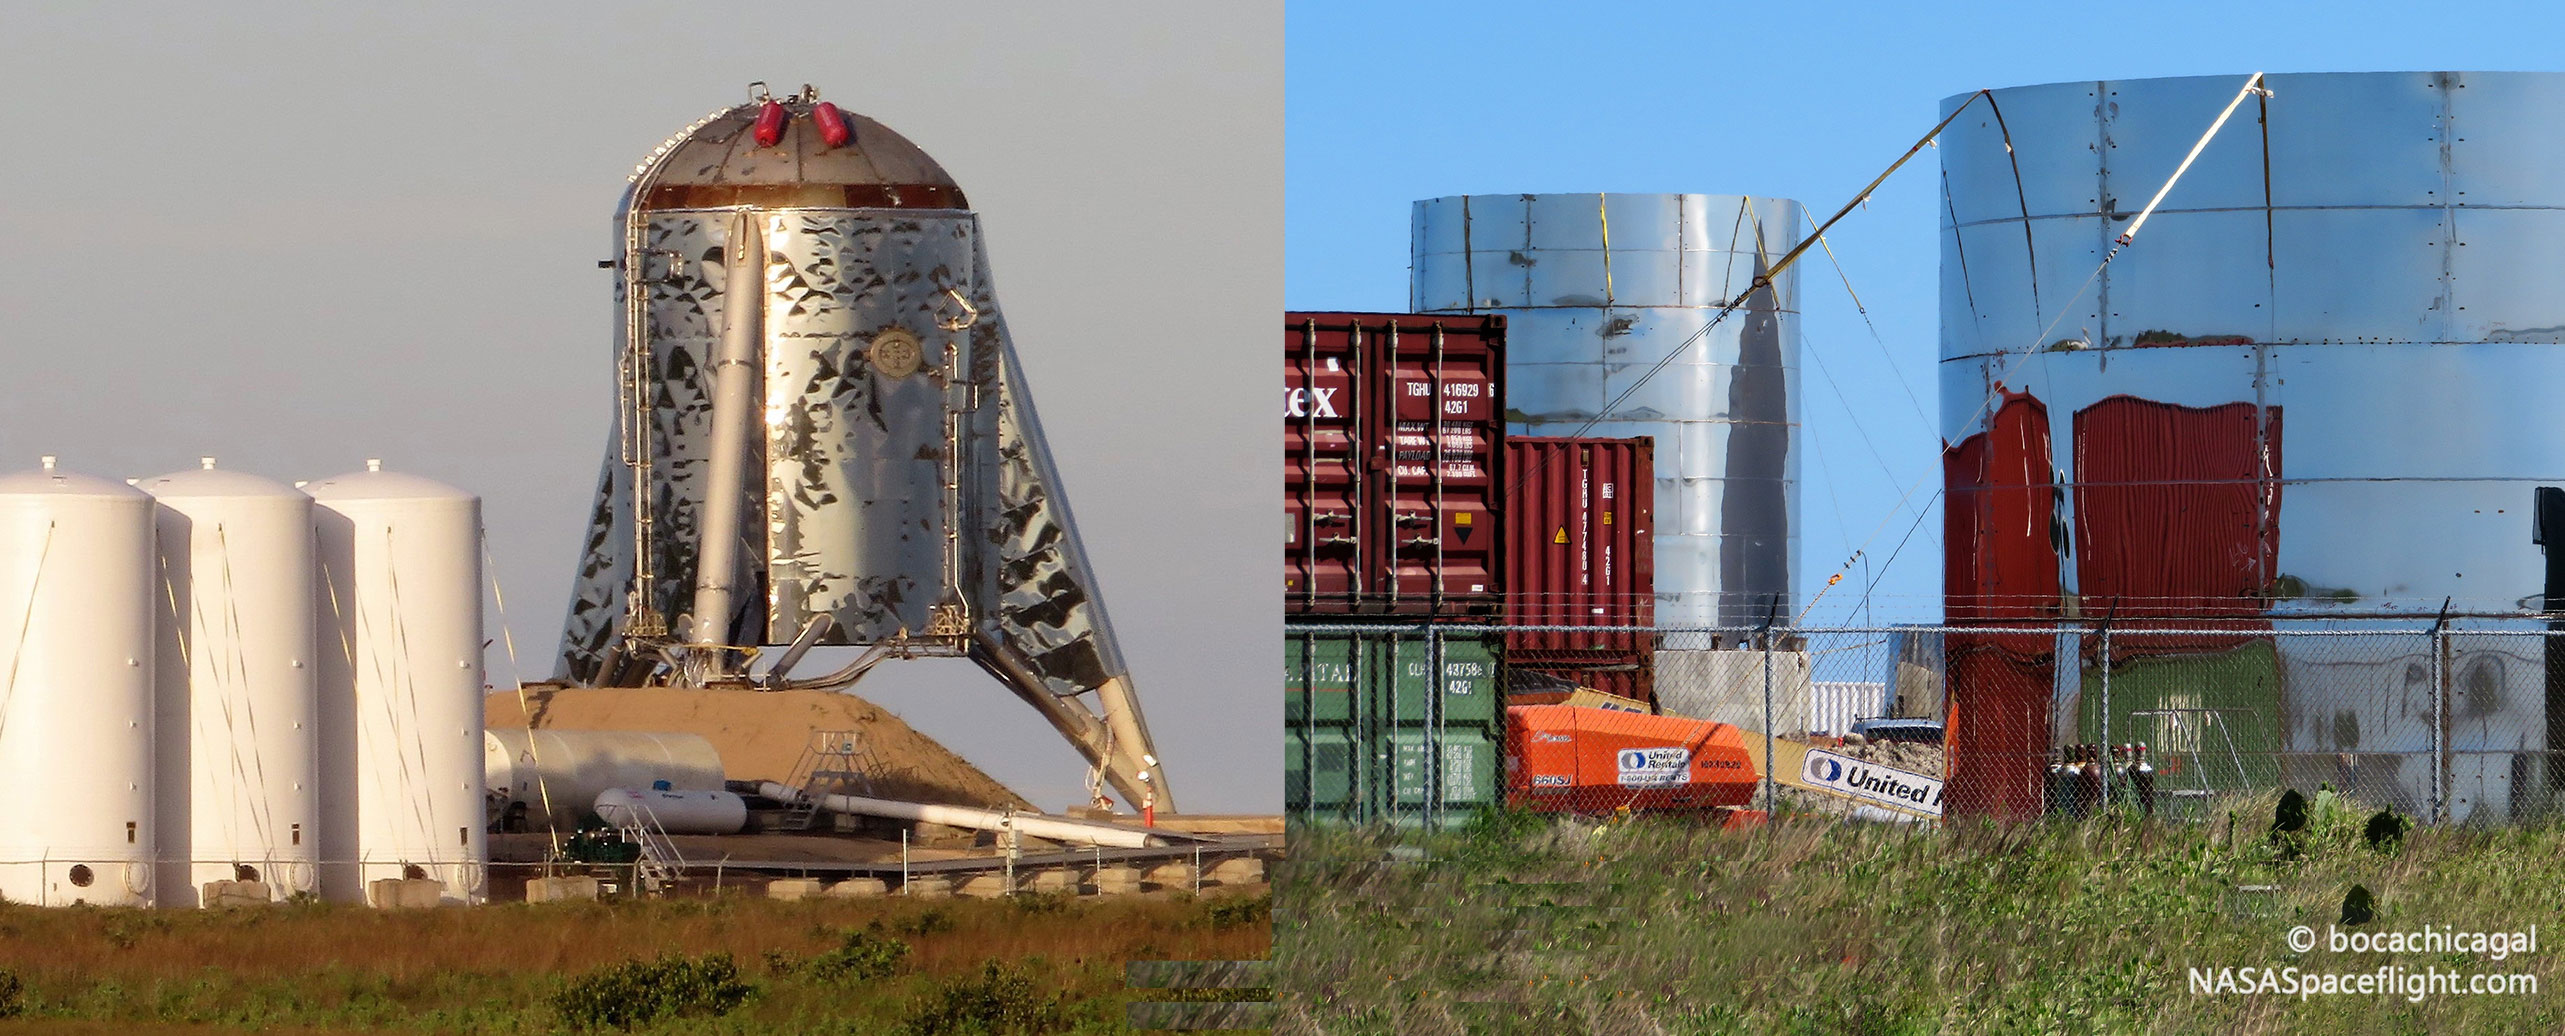 Boca Chica Starhopper and orbital Starship 040819 (NASASpaceflight – bocachicagal) edit 2